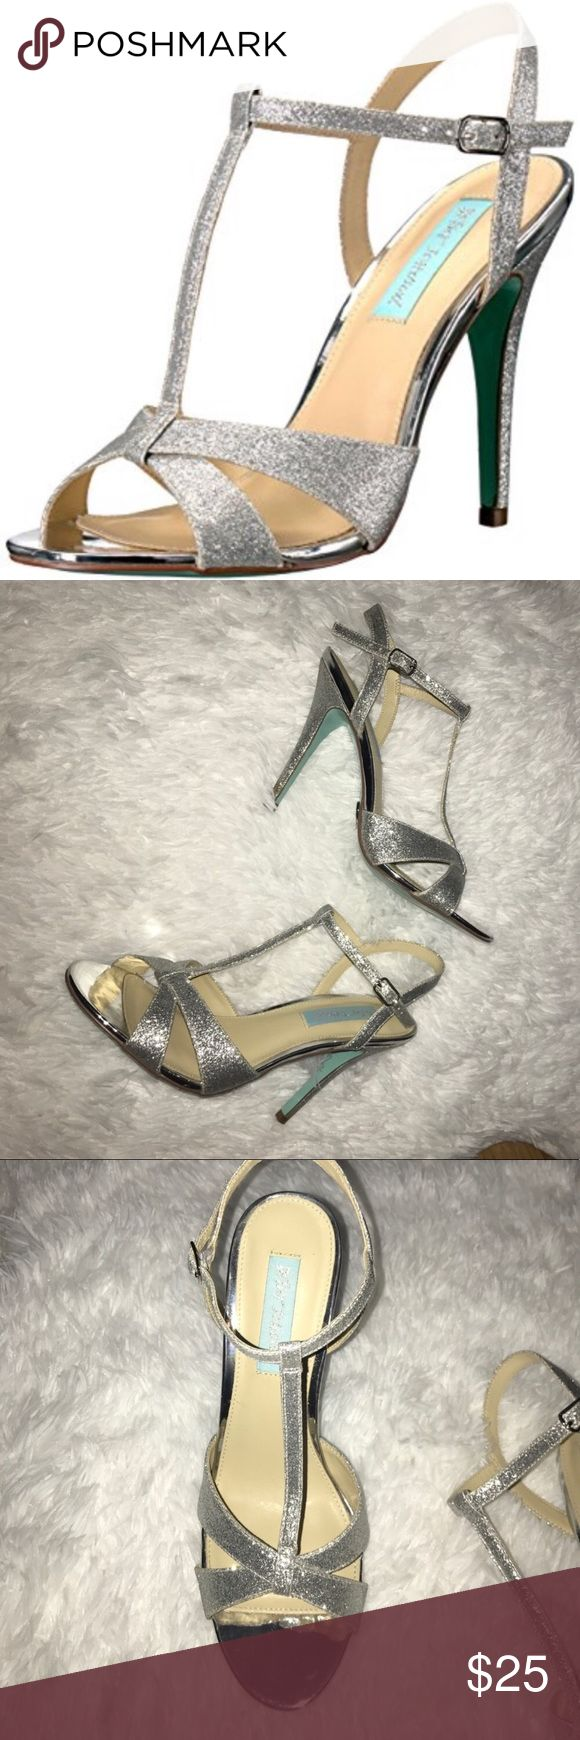 Betsy Johnson teena silver glitter heels. 7 1/2 Betsy Johnson teena silver glitter heels. Worn once. Excellent condition. Bottoms of heels little discolored as shown in last picture Betsey Johnson Shoes Heels #GlitterHeels